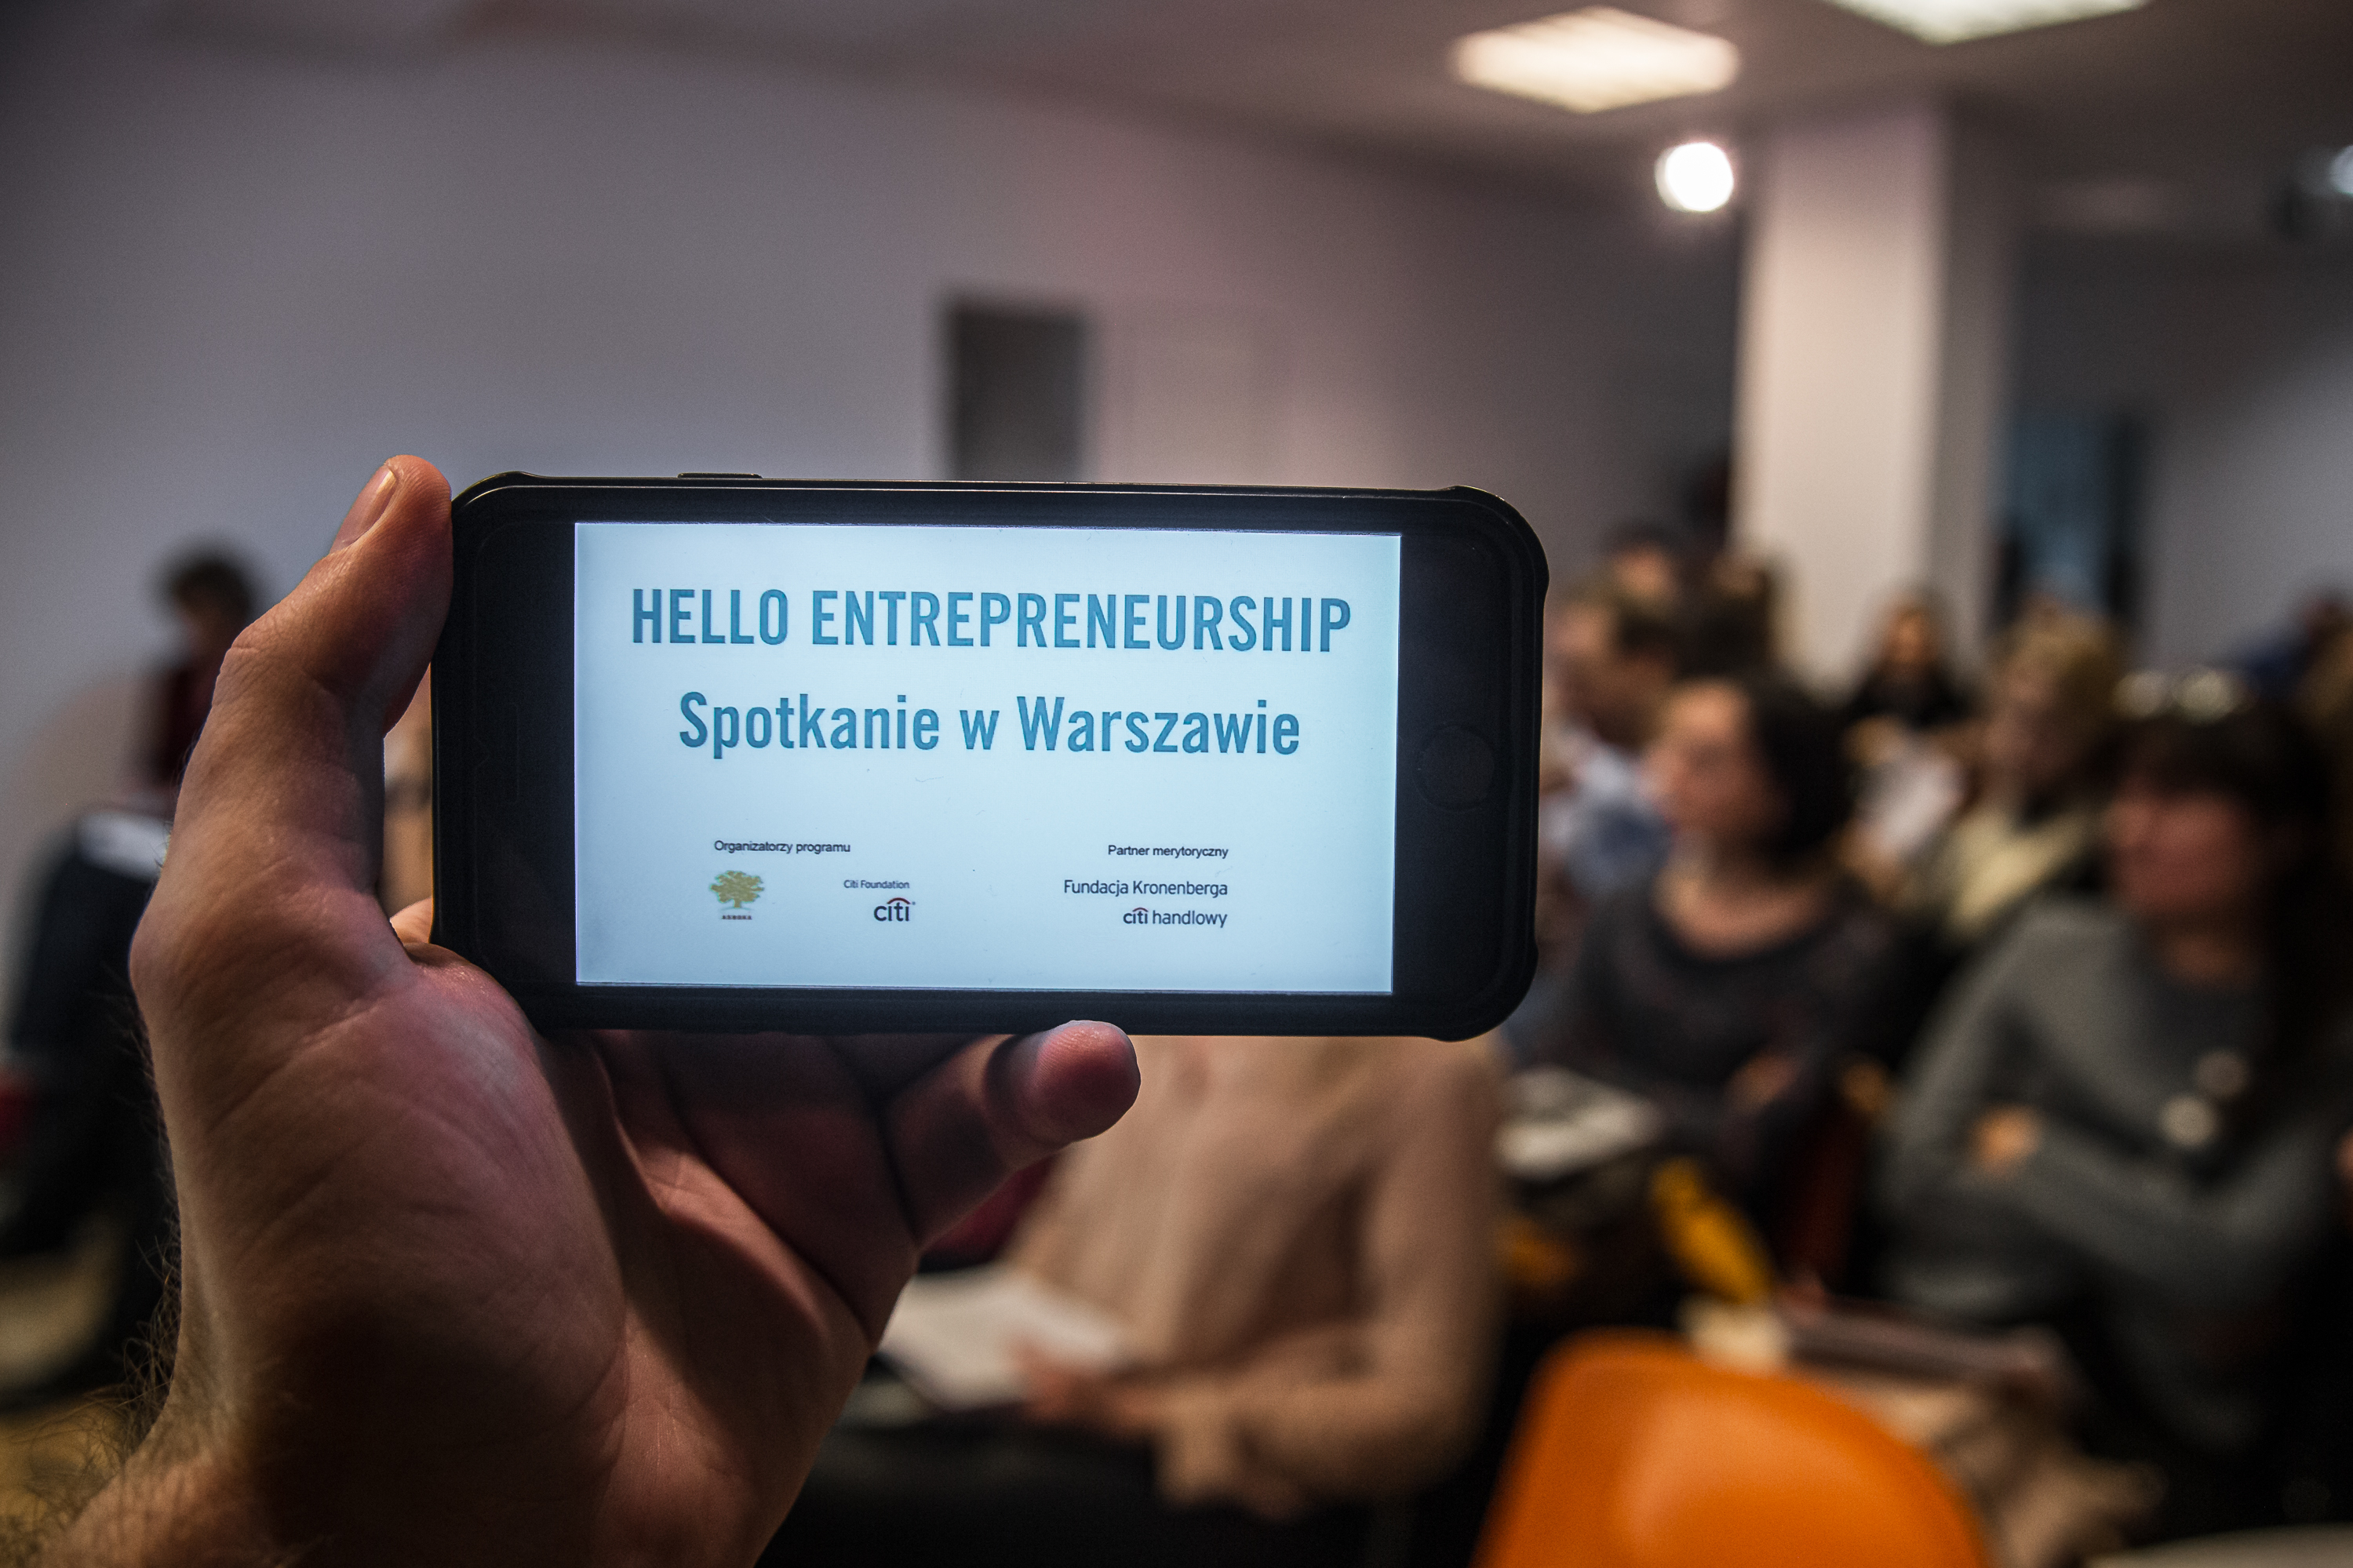 In the foreground a phone with text: Hello Entrepreneurship, in the background a room full of people